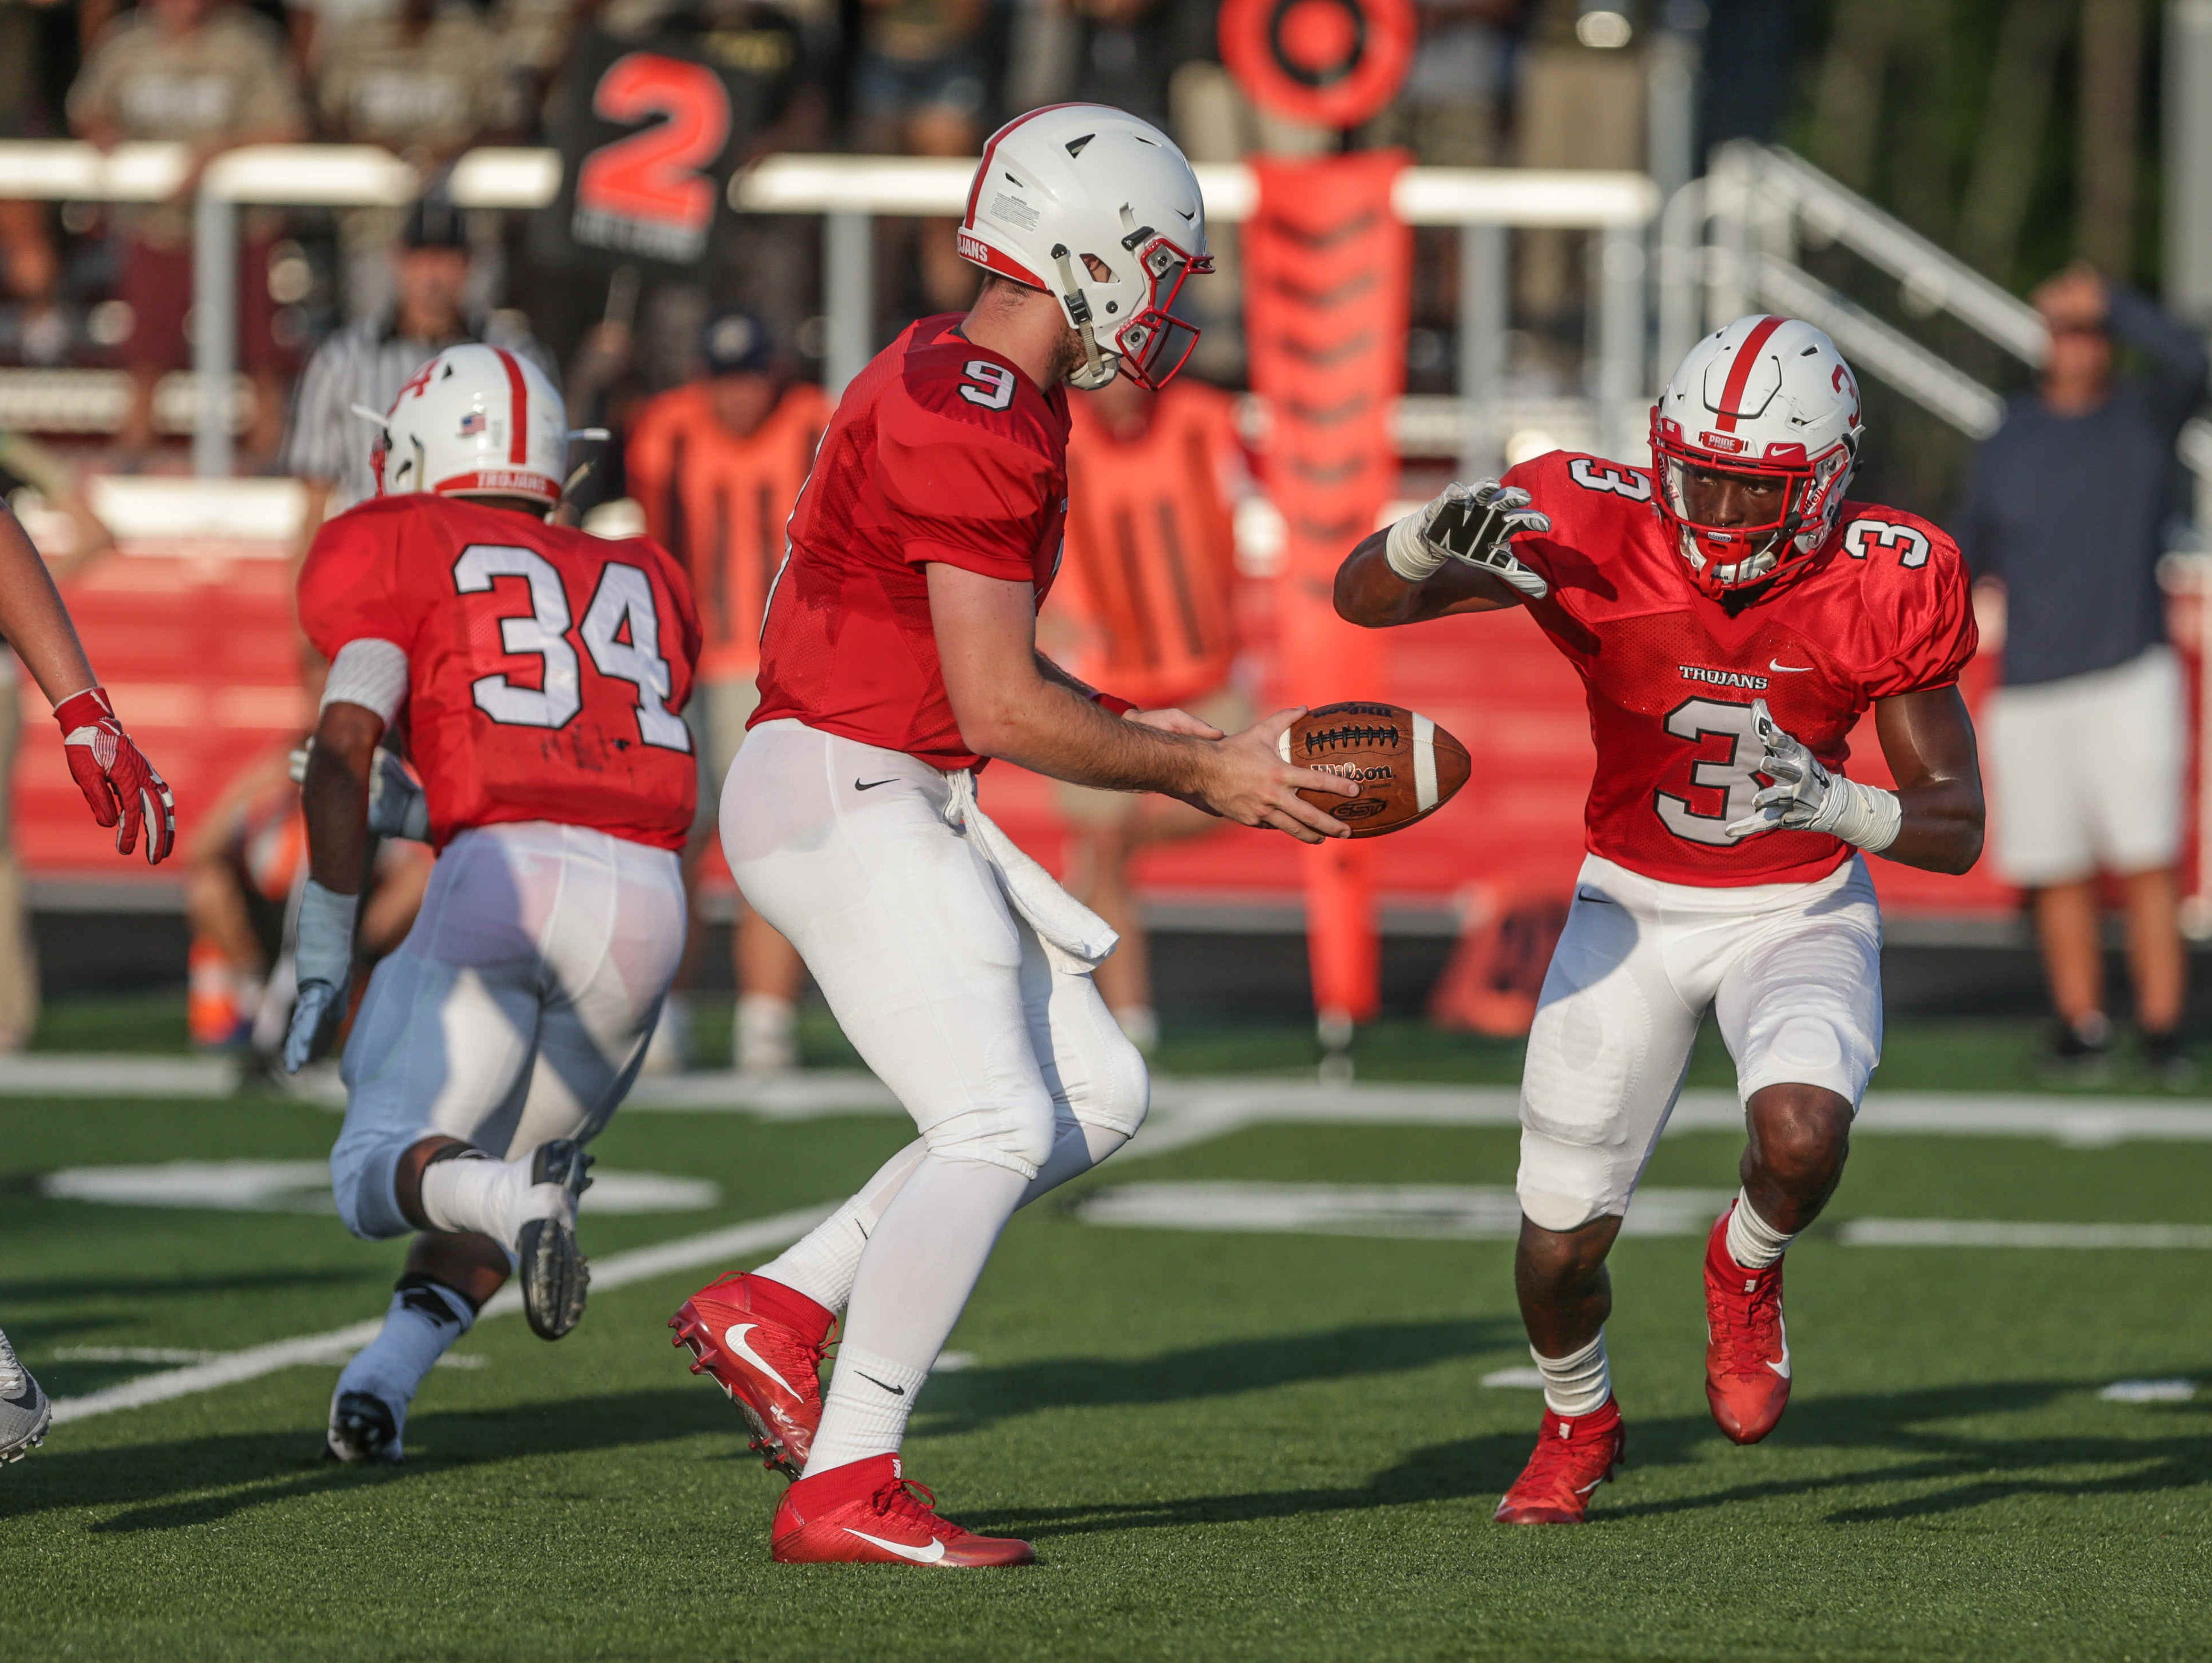 Center Grove's QB, #9, Jack Kellams hands the ball off to RB, #3, Russ Yeast, during the first game of the season, as Warren Central High School takes on Center GroveGrove High School at Center Grove, Friday August 19th, 2016.